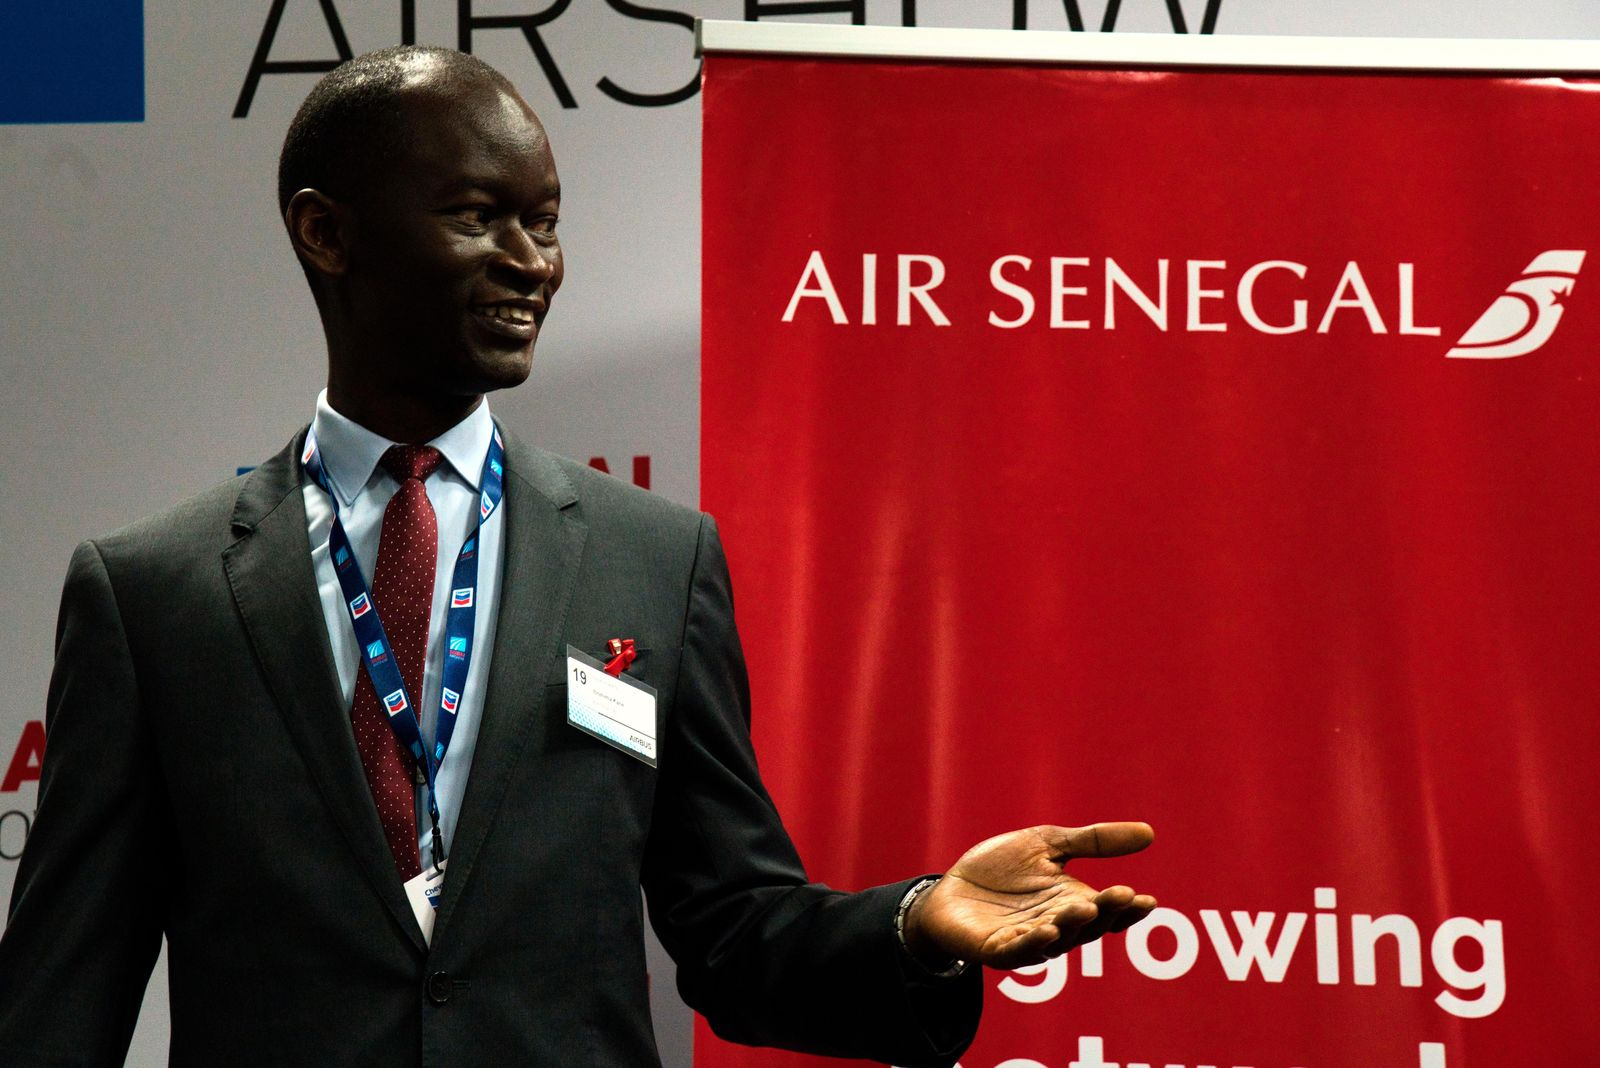 Air Senegal CEO Ibrahima Kane gestures before the start of a news conference at the Dubai Airshow in Dubai, United Arab Emirates, Tuesday, Nov. 19, 2019. (AP Photo/Jon Gambrell)